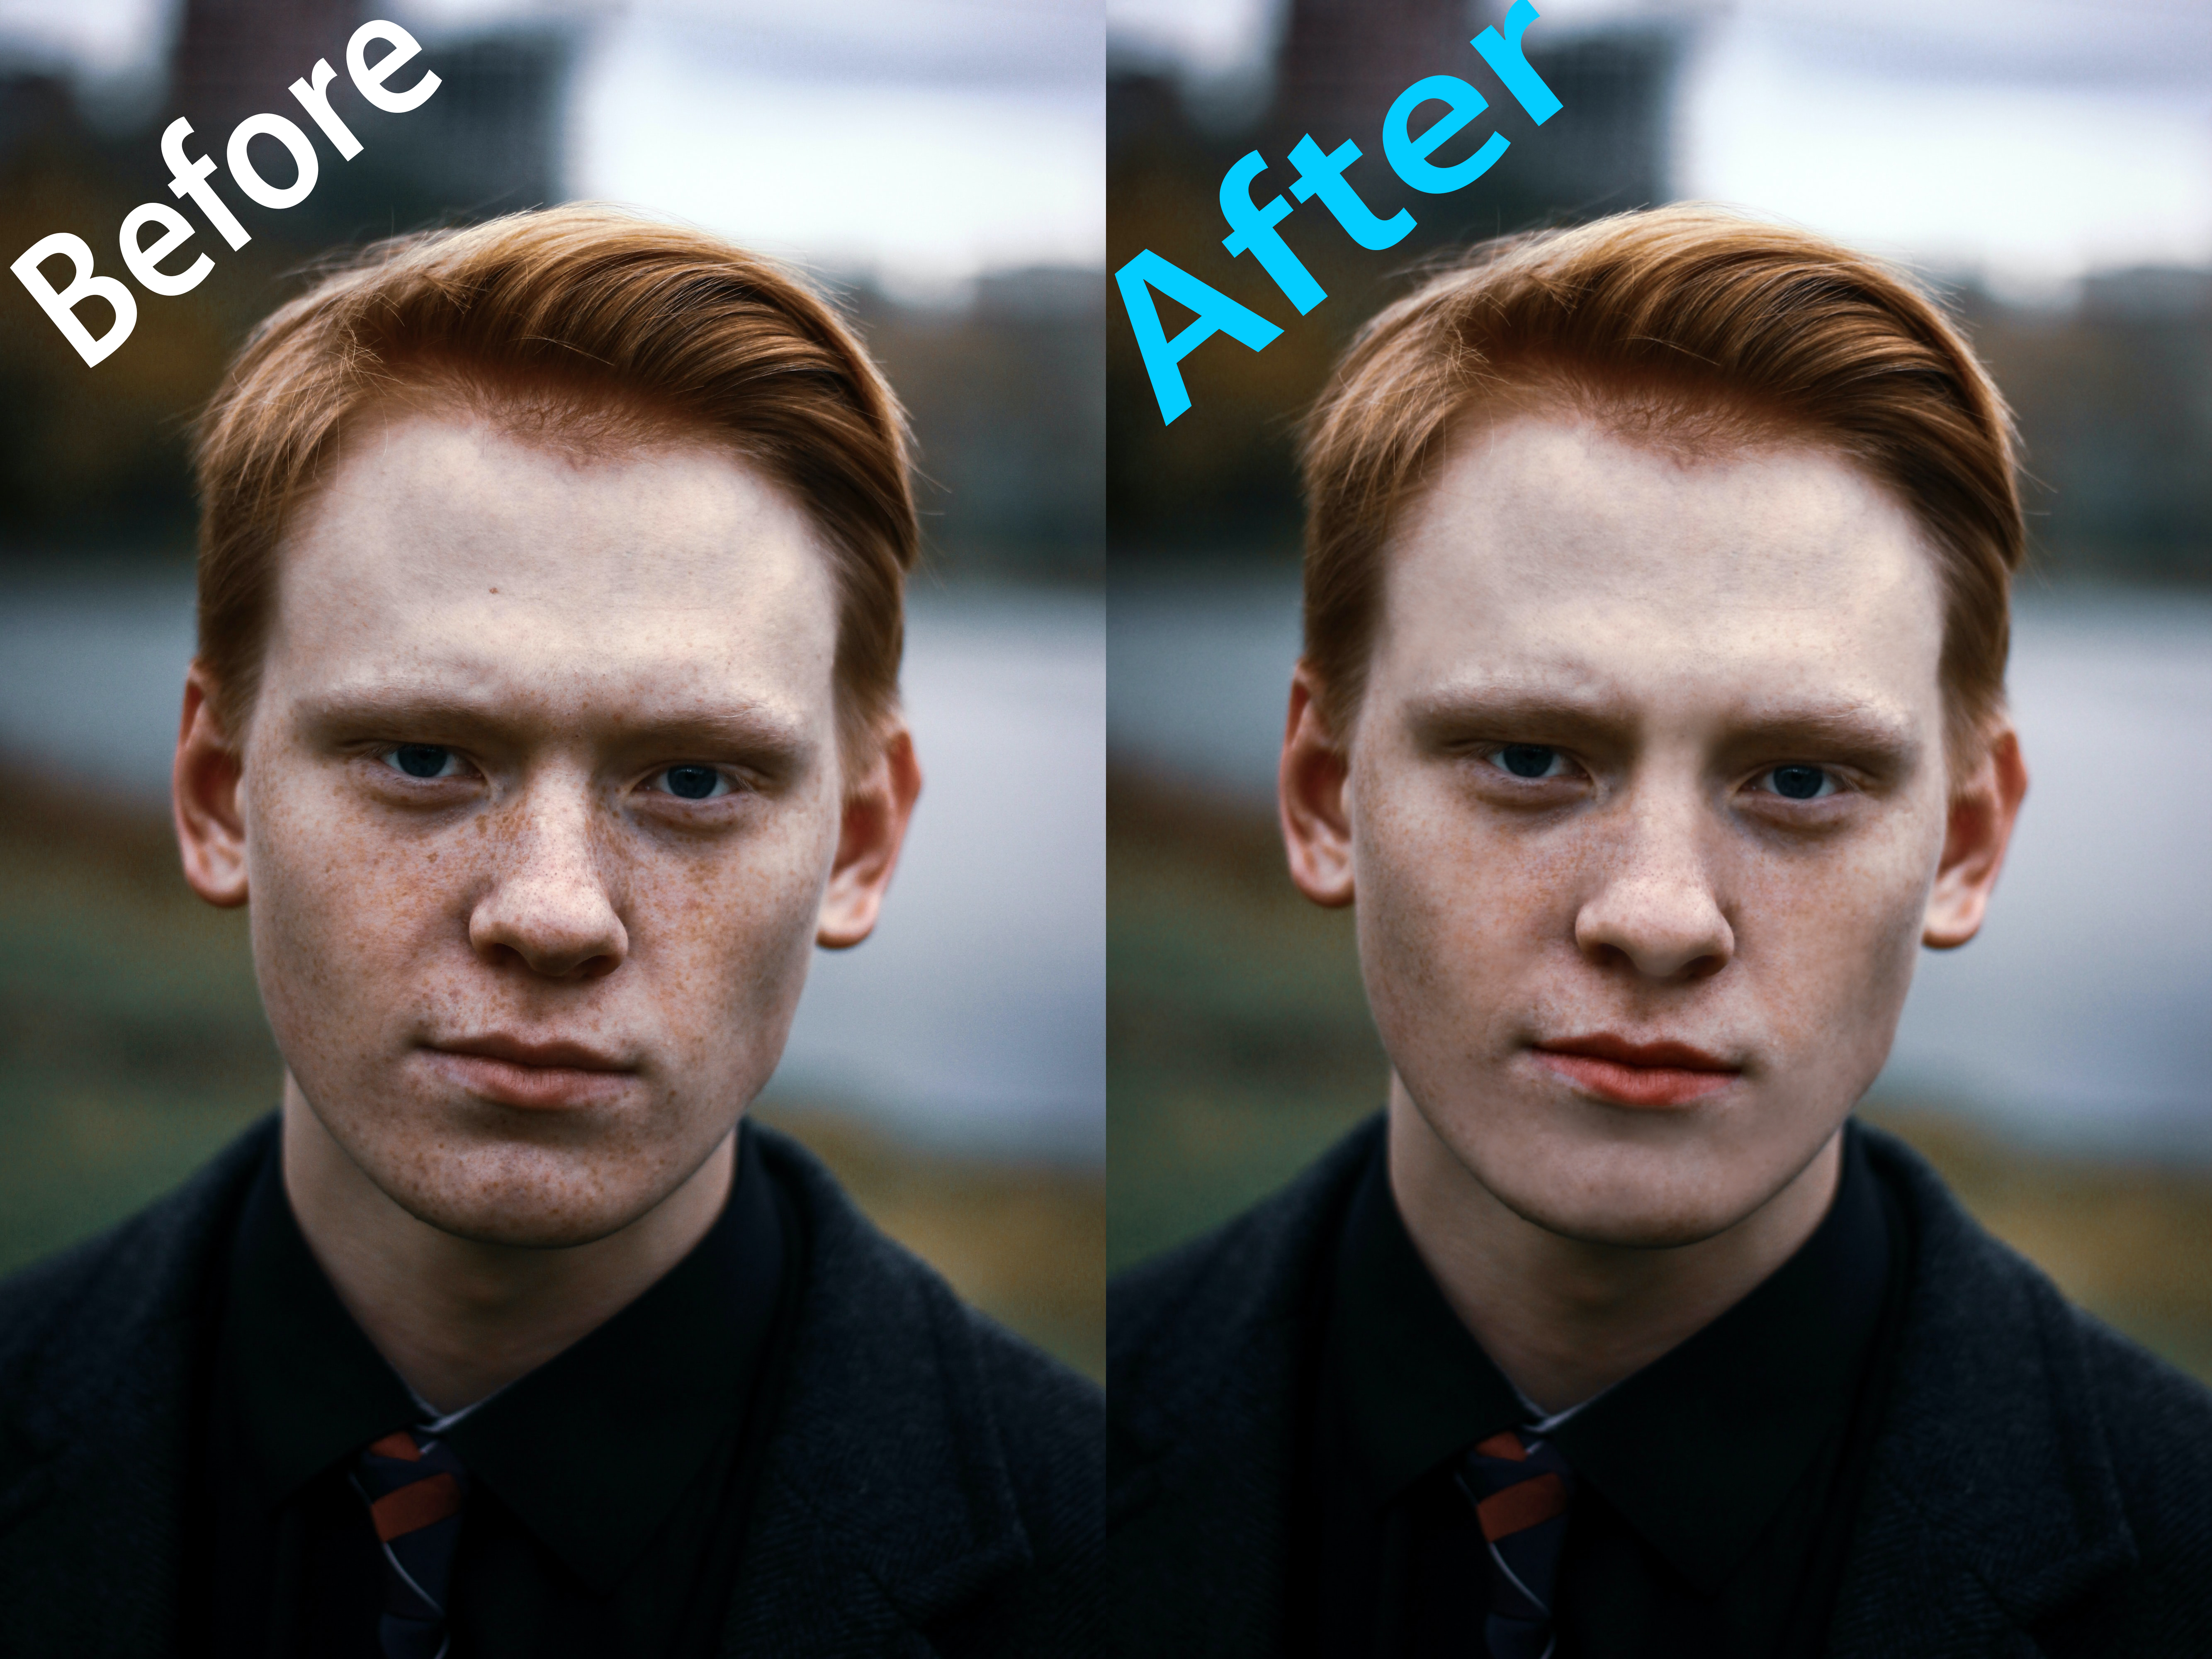 I will do Image Retouch with B_G remove